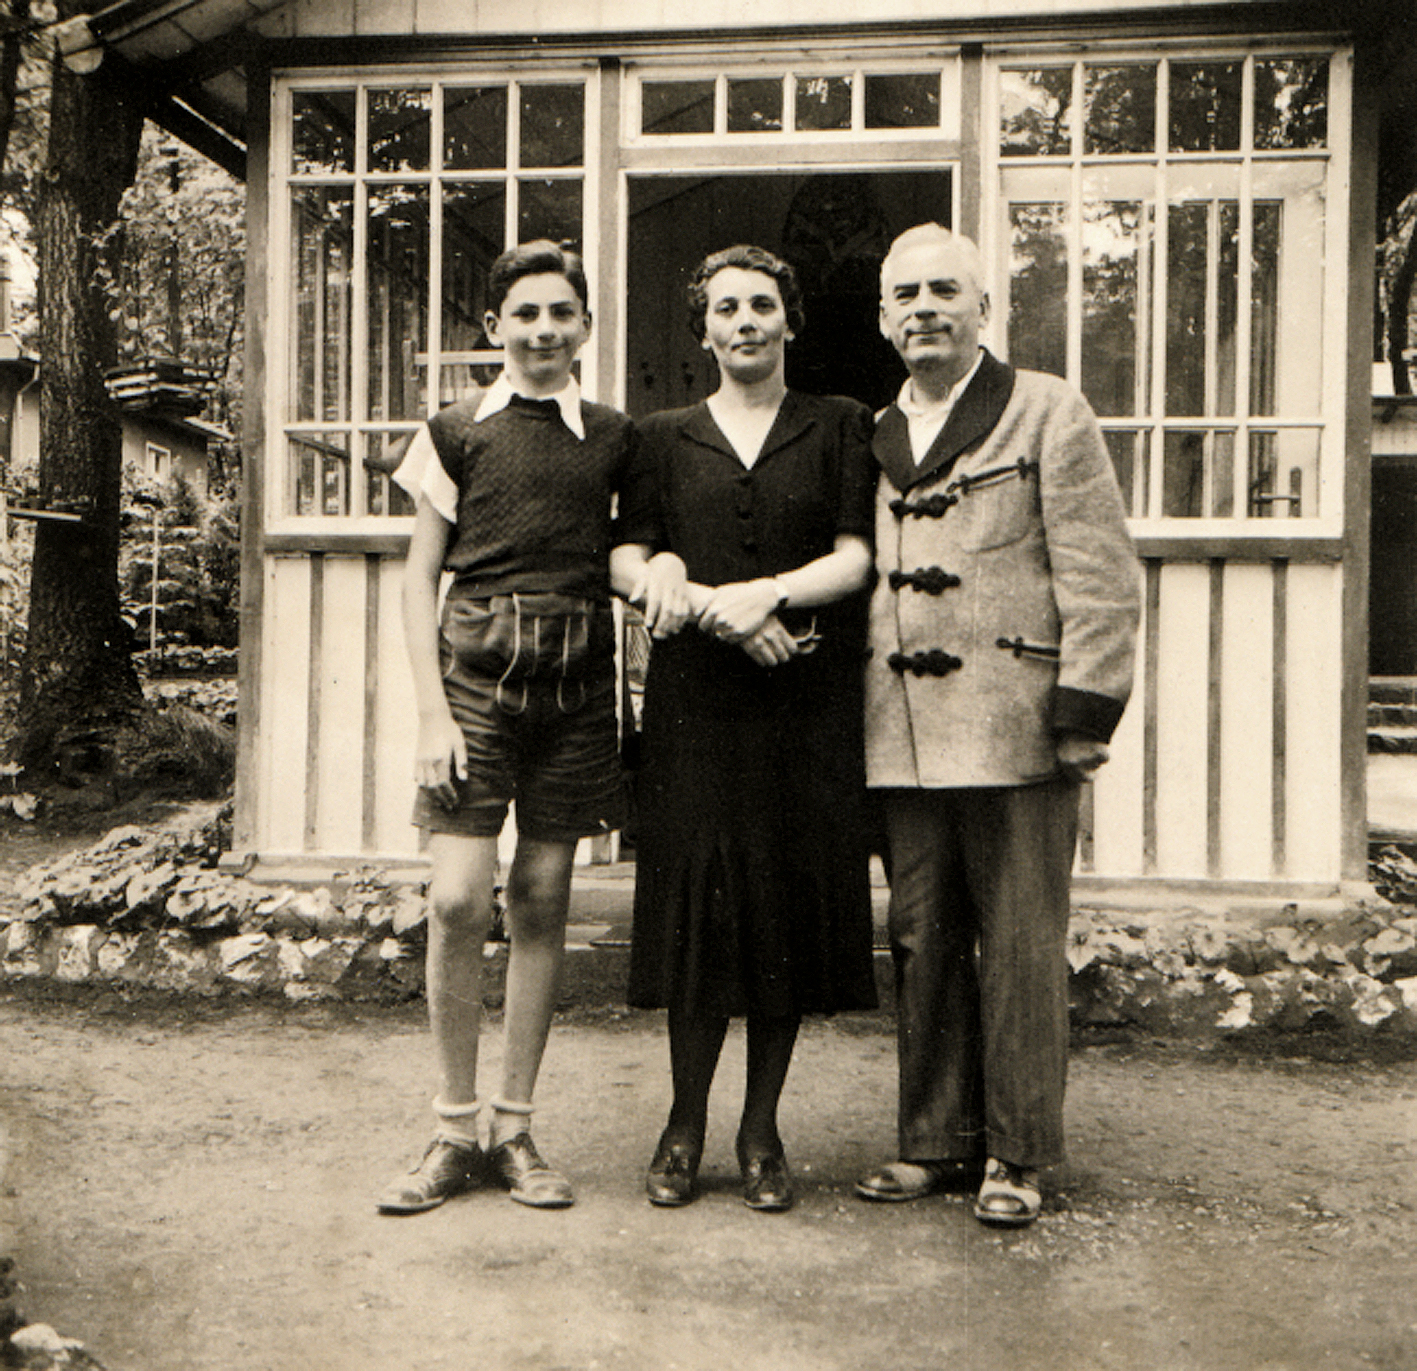 Gabor Paneth and his parents Lajos and Margit Paneth